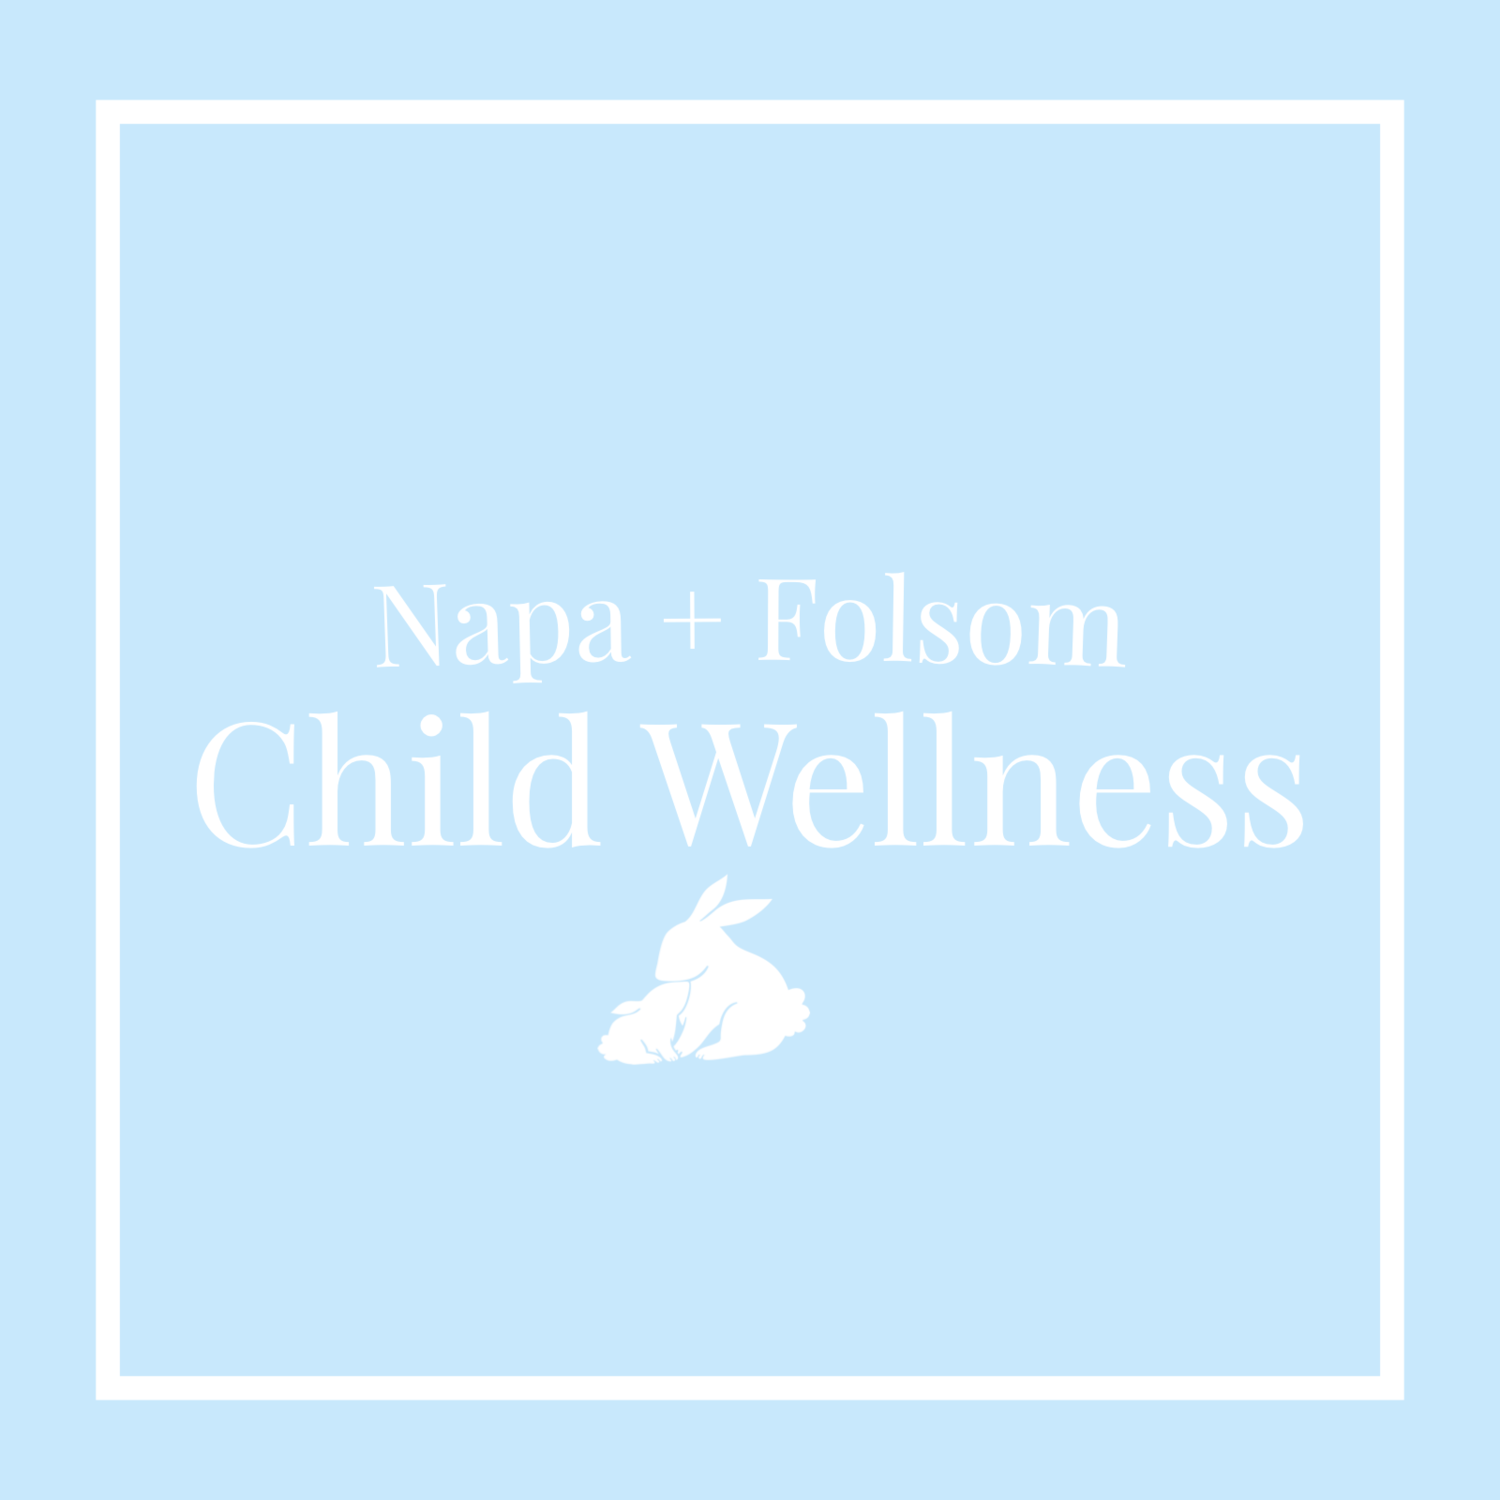 Napa + Folsom Child Wellness